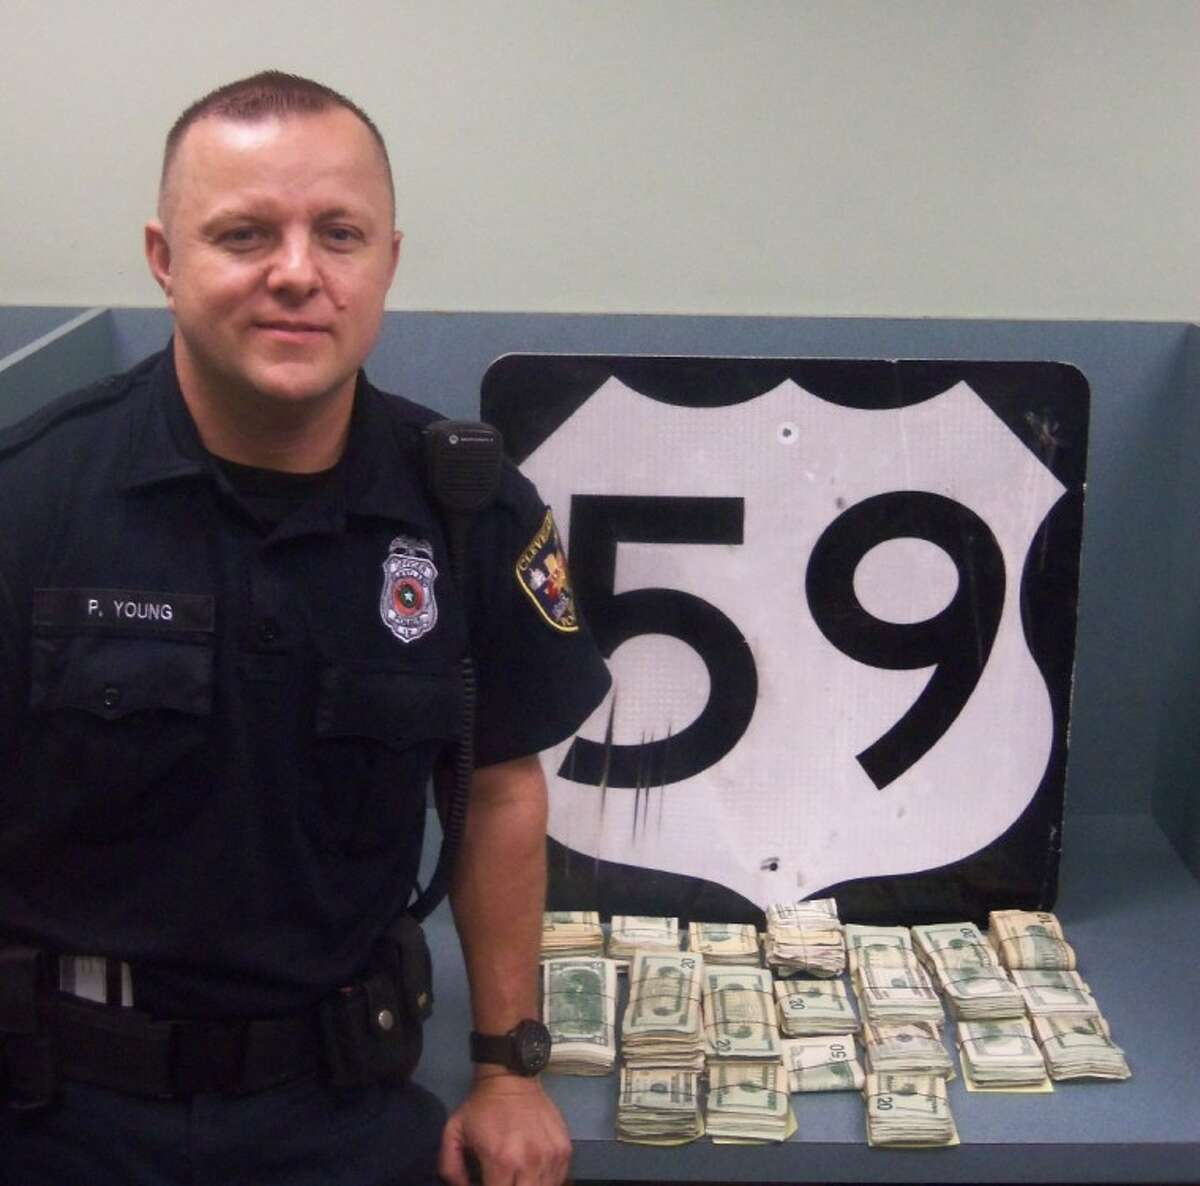 Cleveland Police Officer Paul Young displays the $30,000 in cash he seized Wednesday evening from a vehicle on US 59.